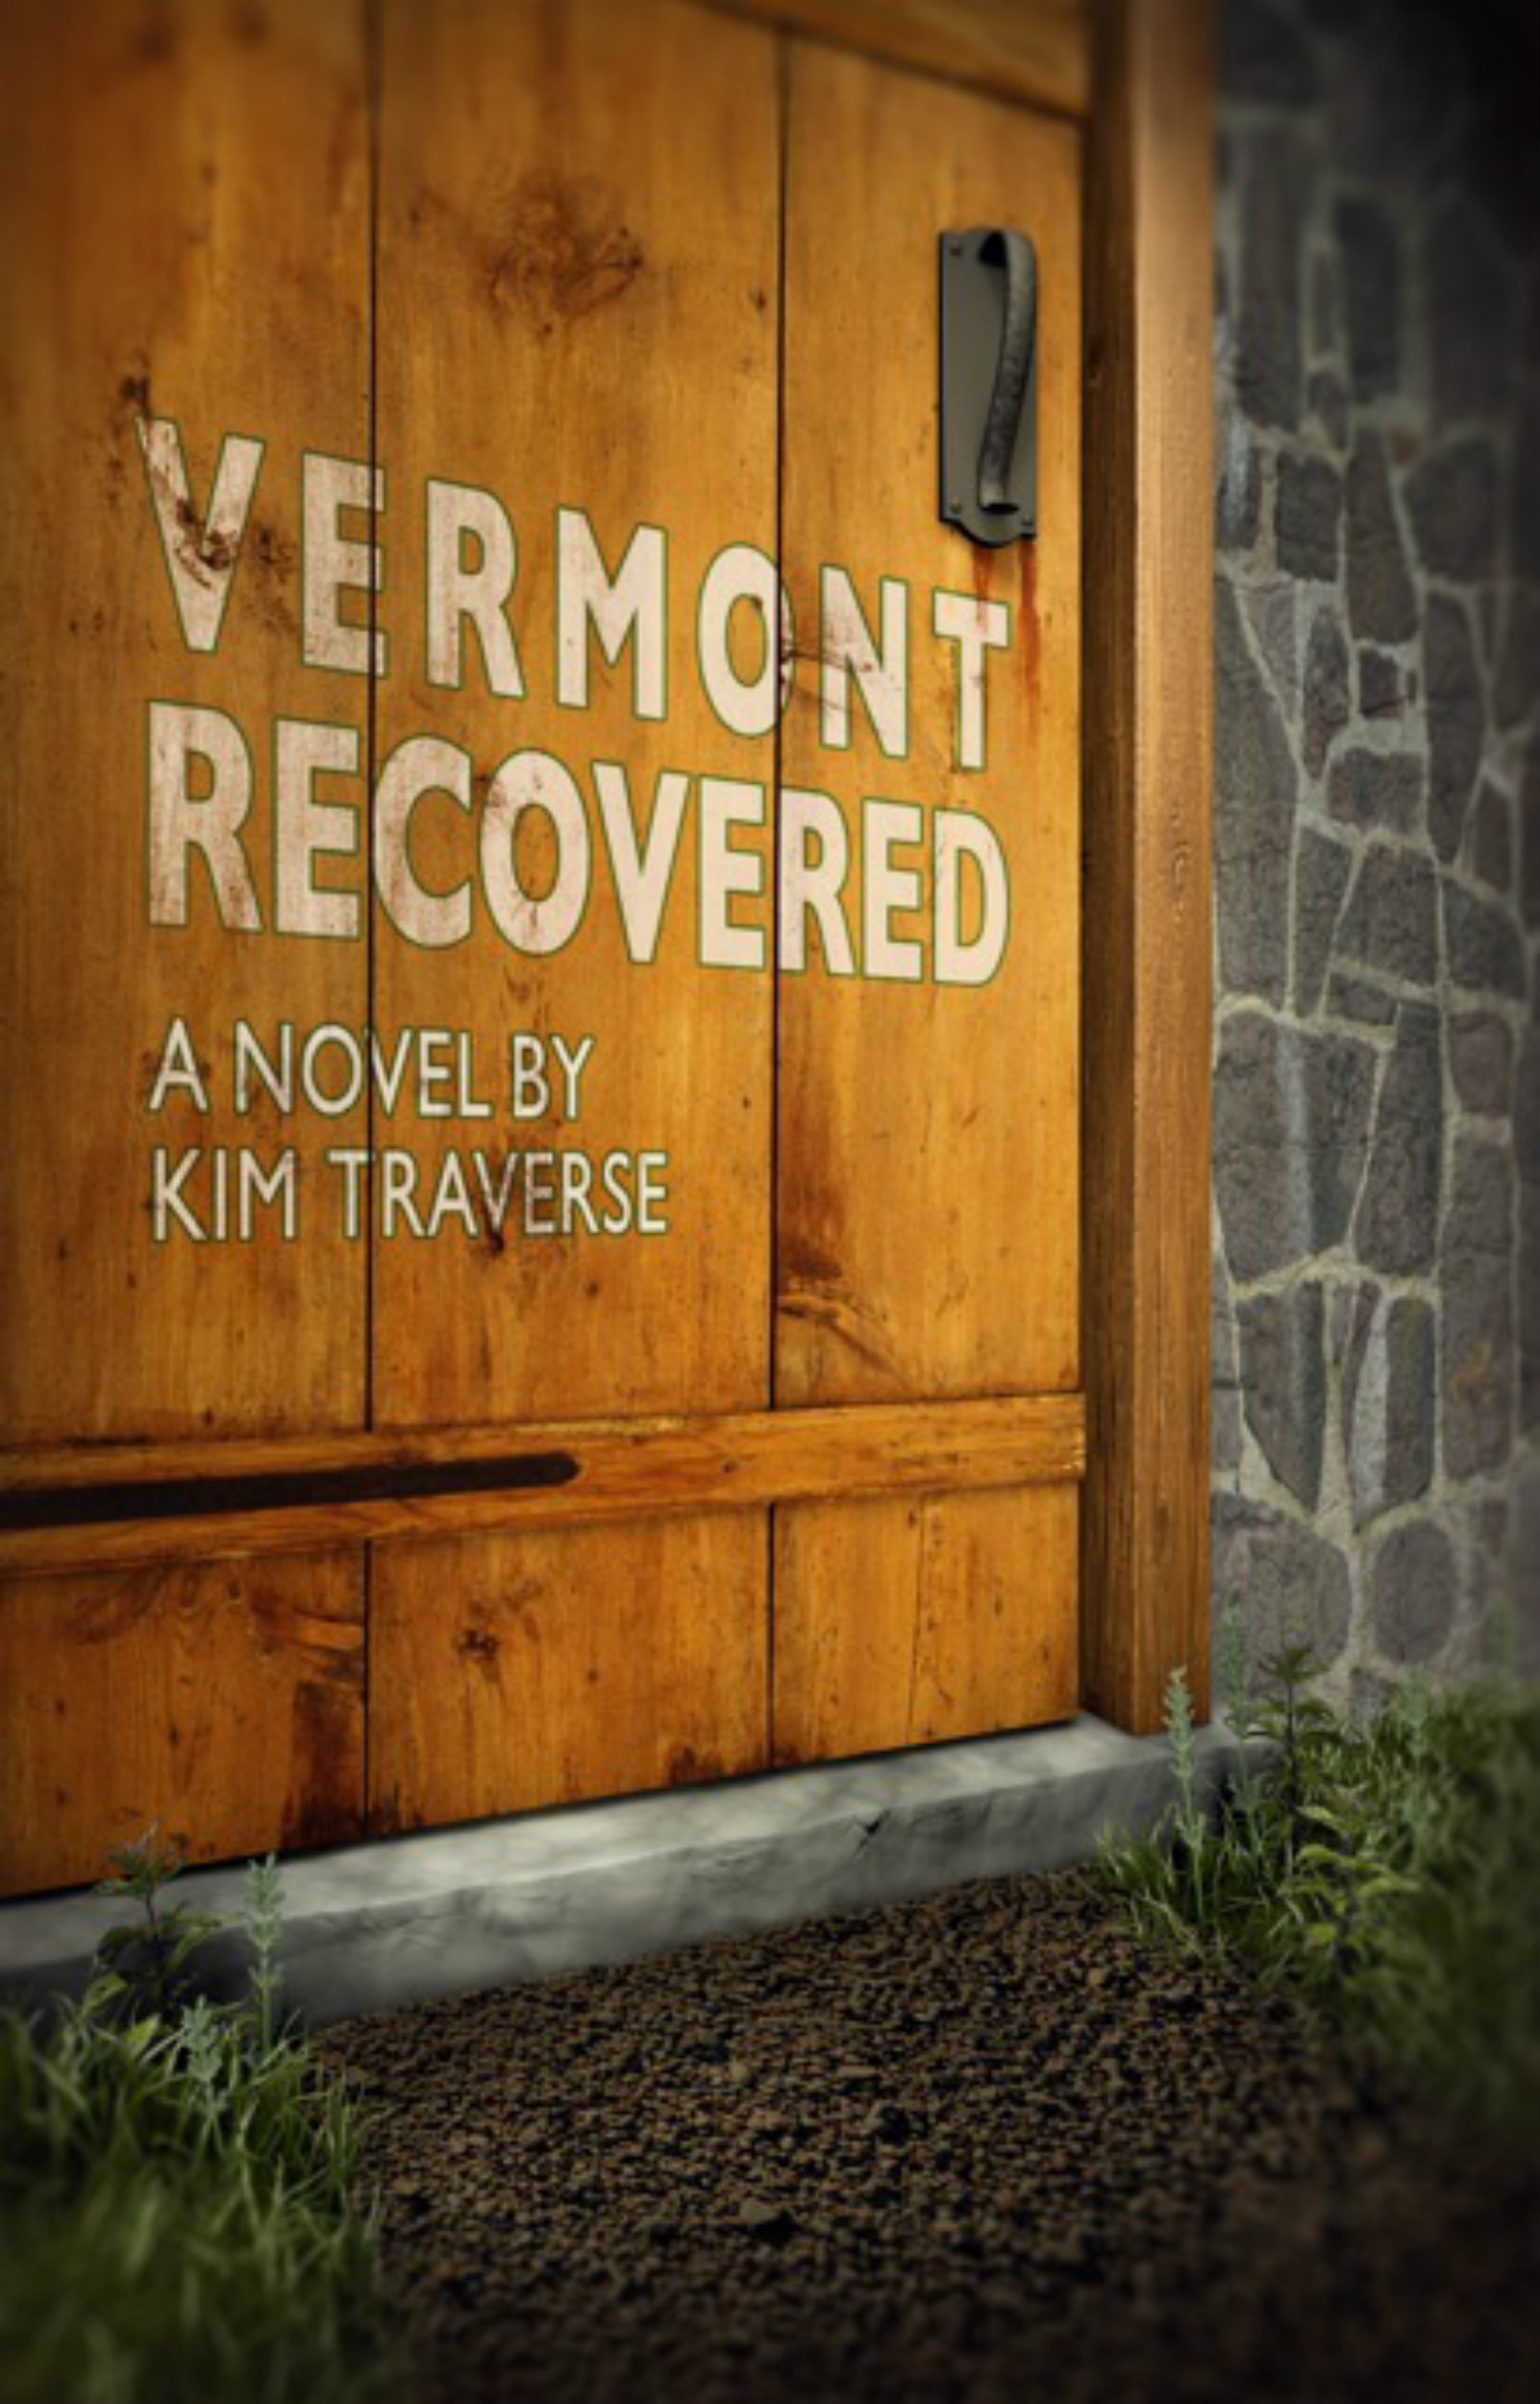 Vermont Recovered By Kim Traverse